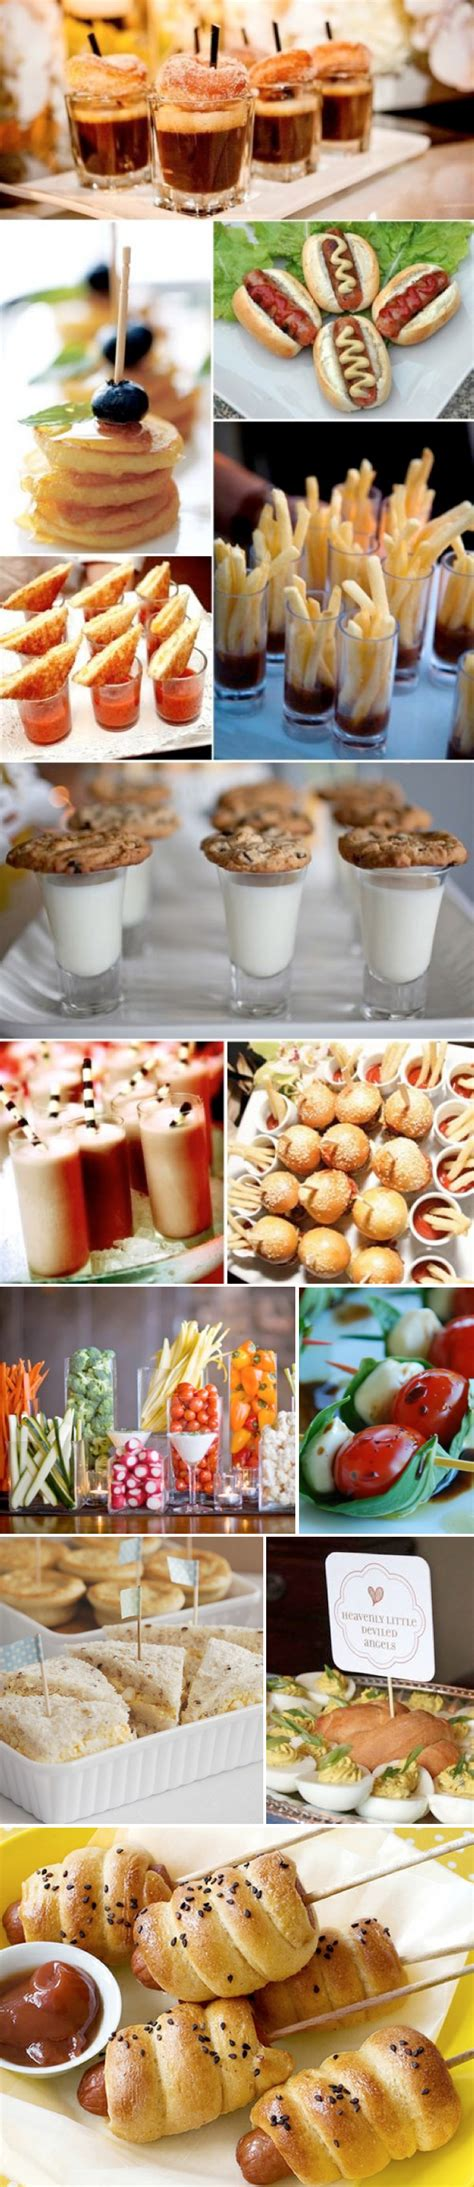 Wedding Buffet Menu Ideas Cheap Wedding Buffet Menu Ideas